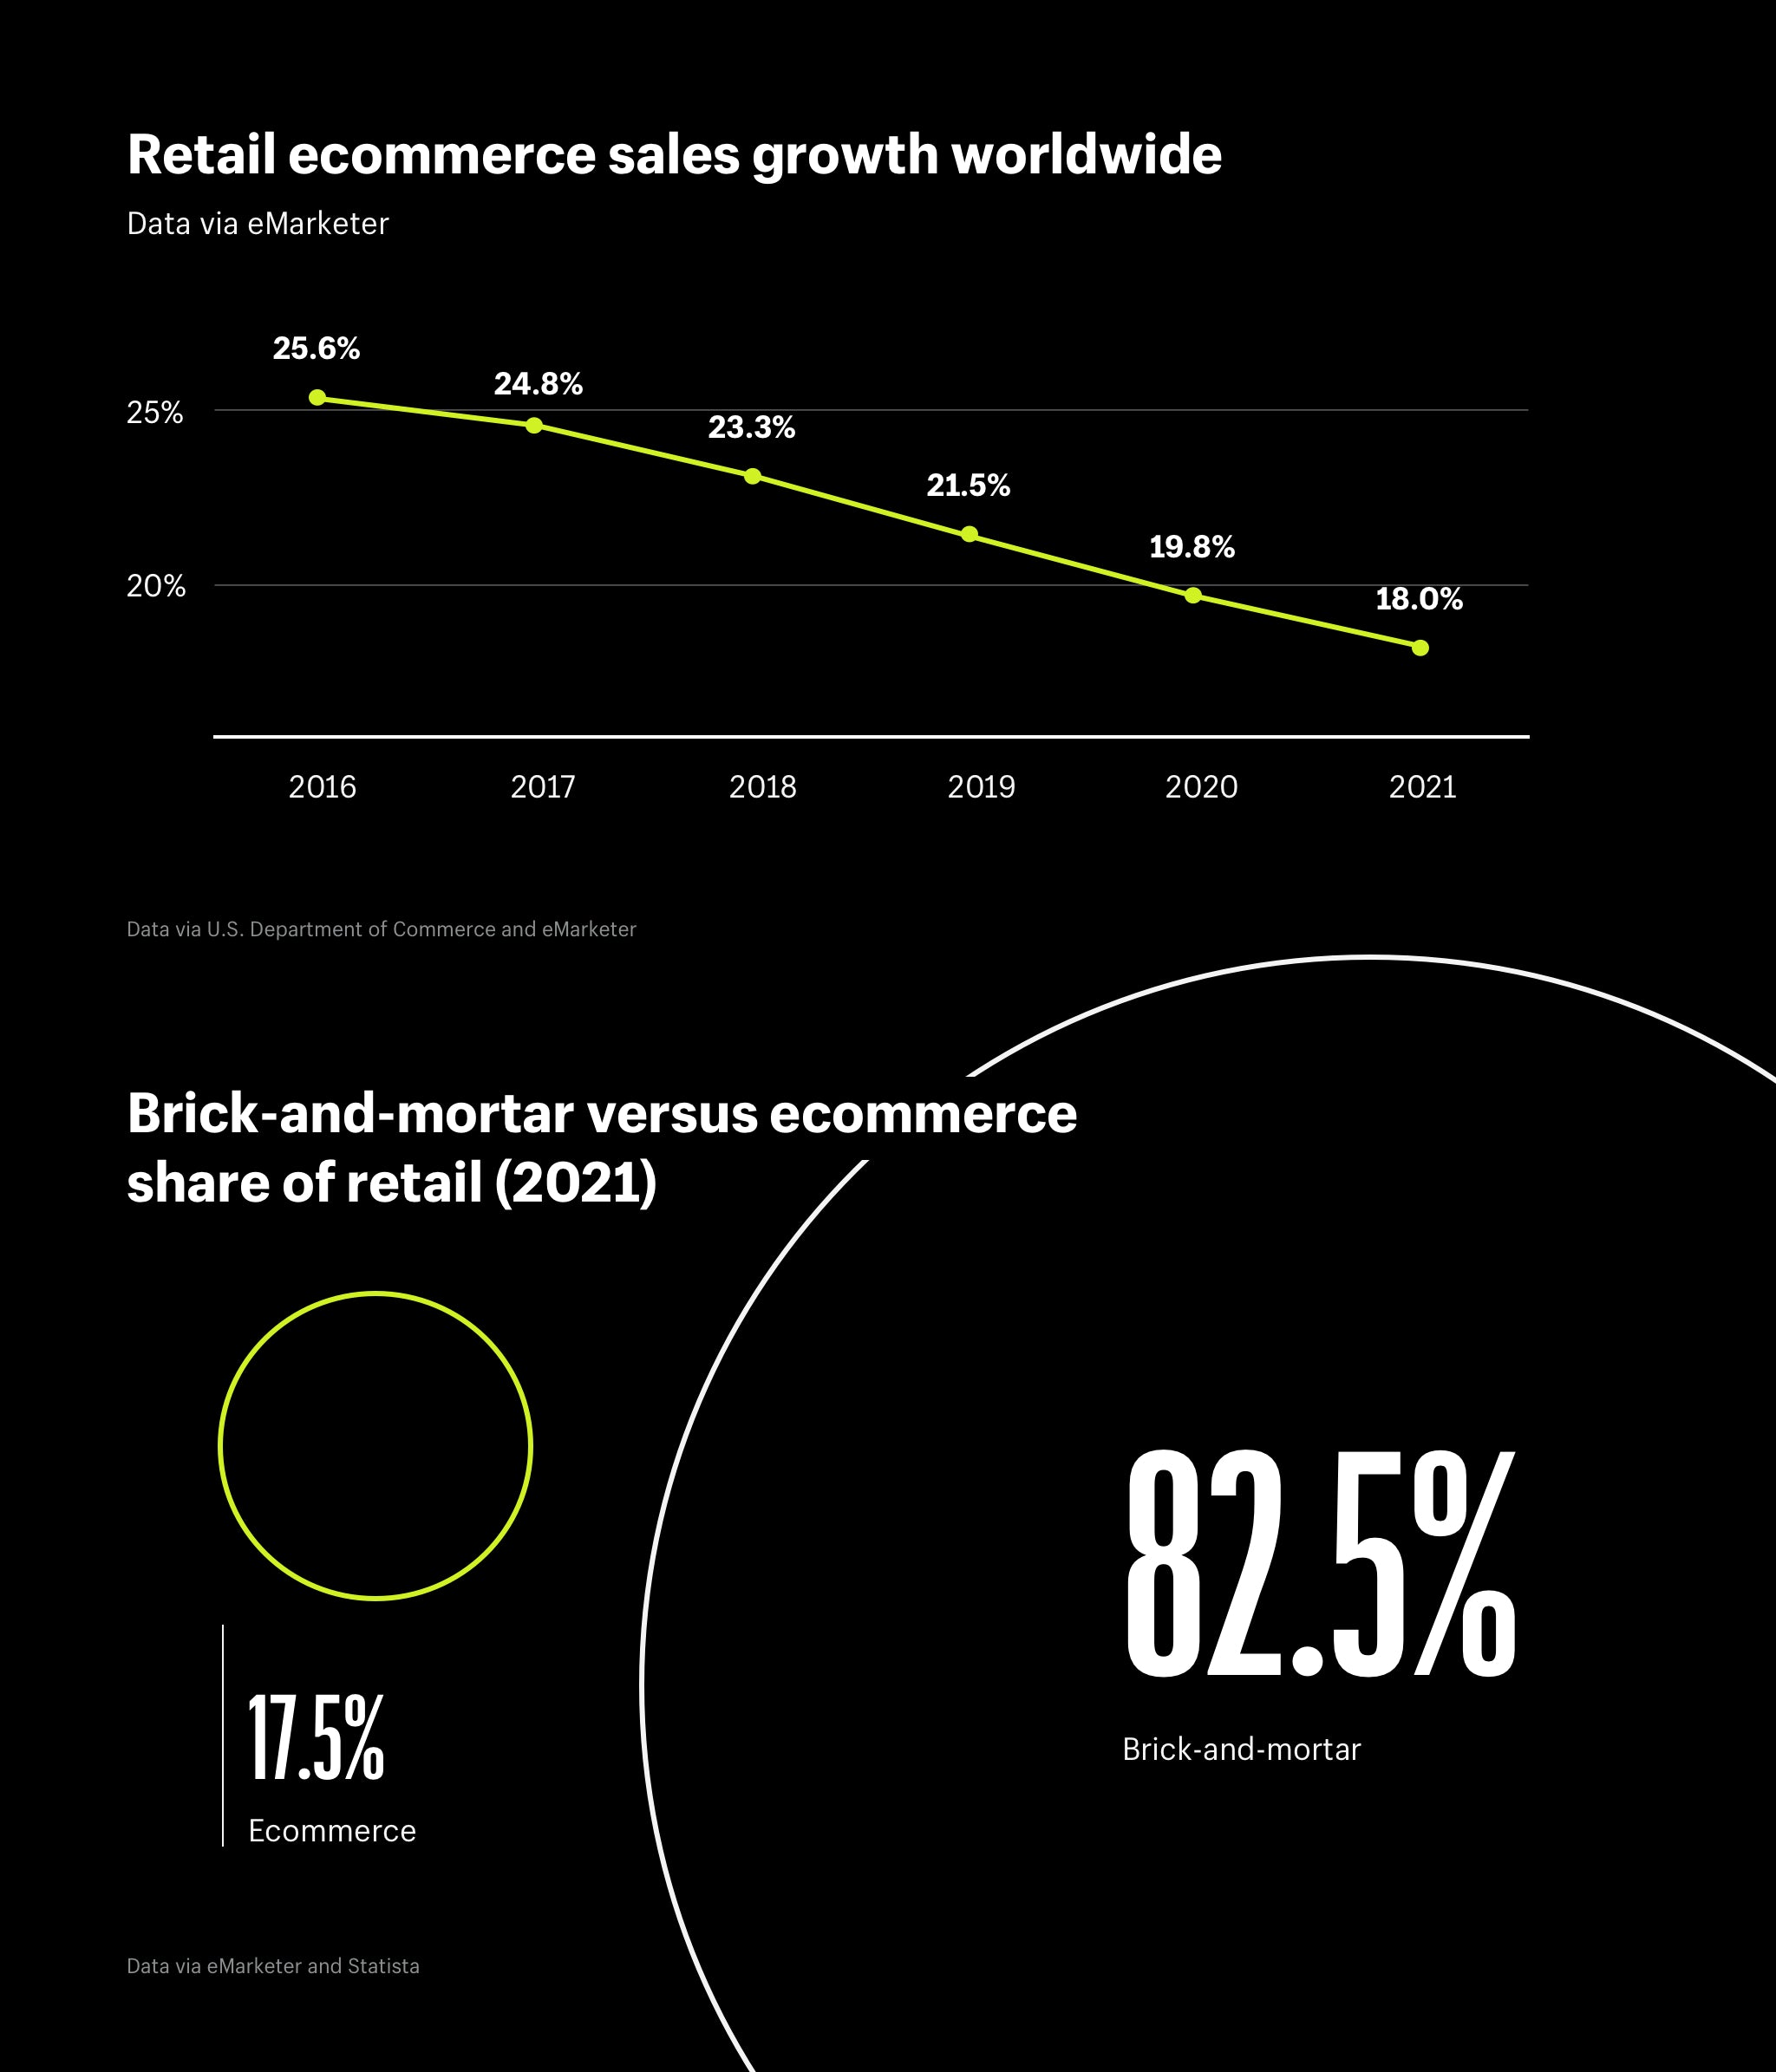 Retail ecommerce sales growth worldwide and brick-and-mortar versus ecommerce share of retail (2021)